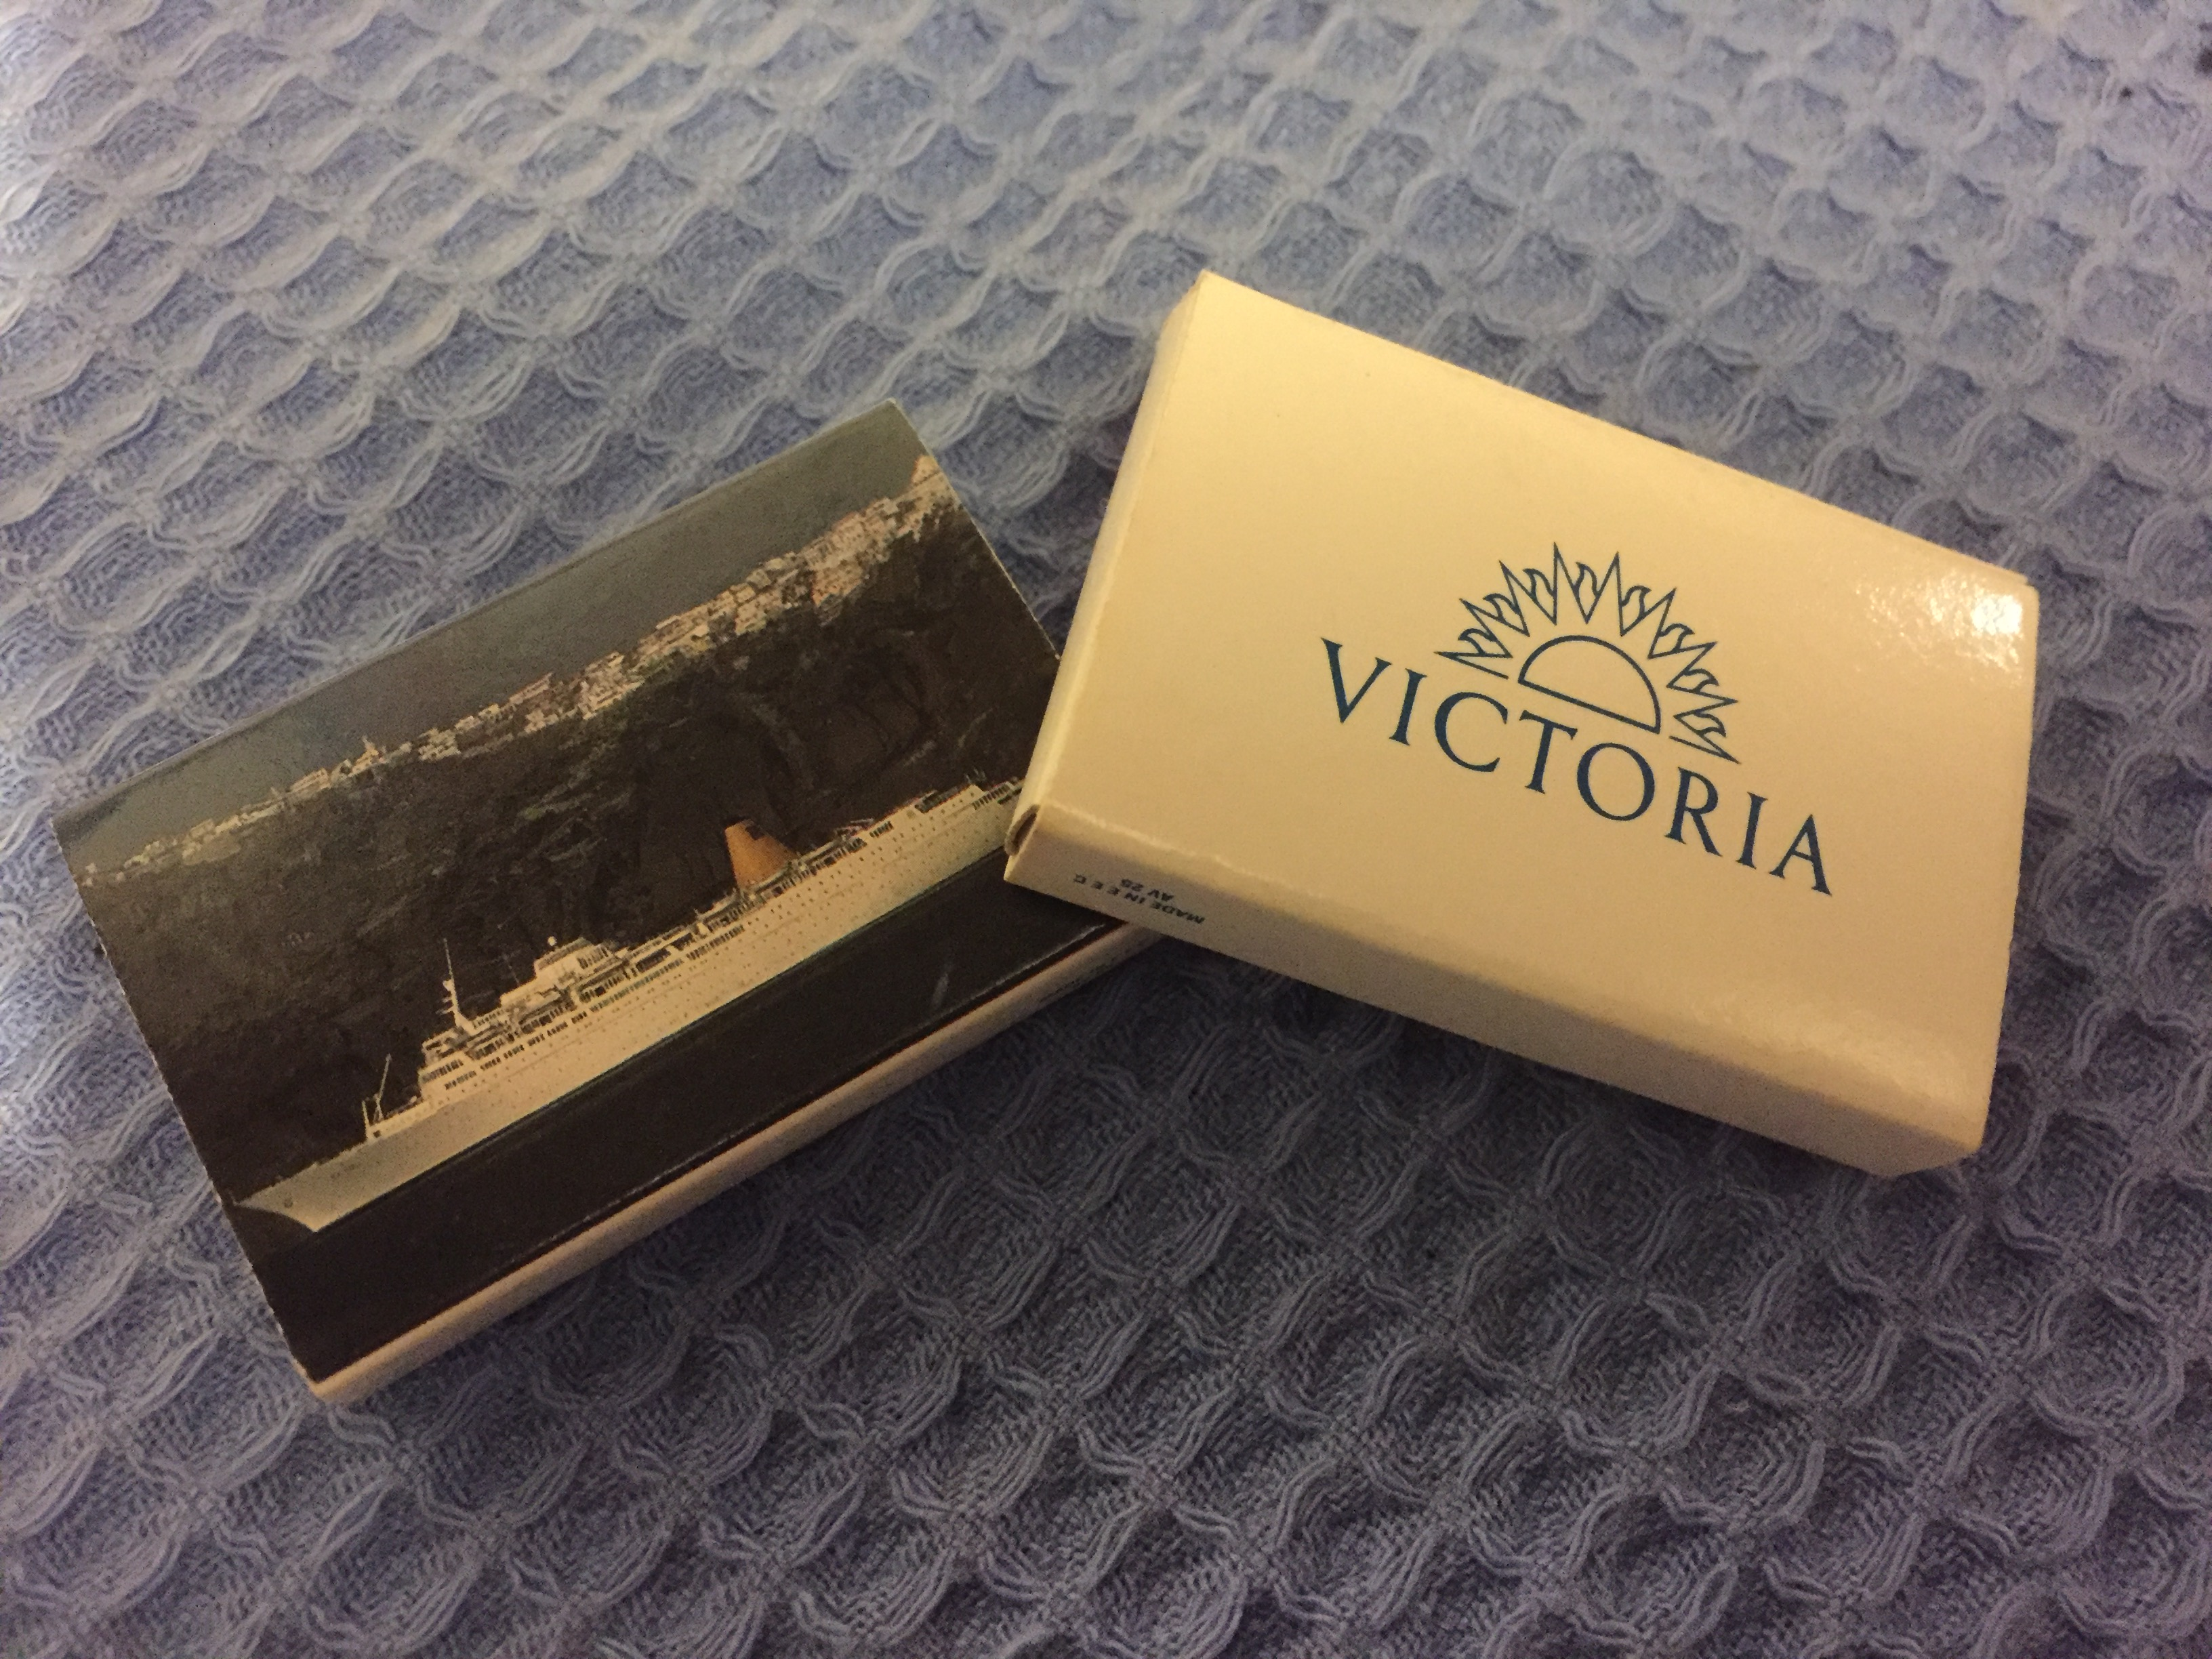 TWO BOXES OF UNUSED MATCHES FROM THE P&O LINE VESSEL VICTORIA